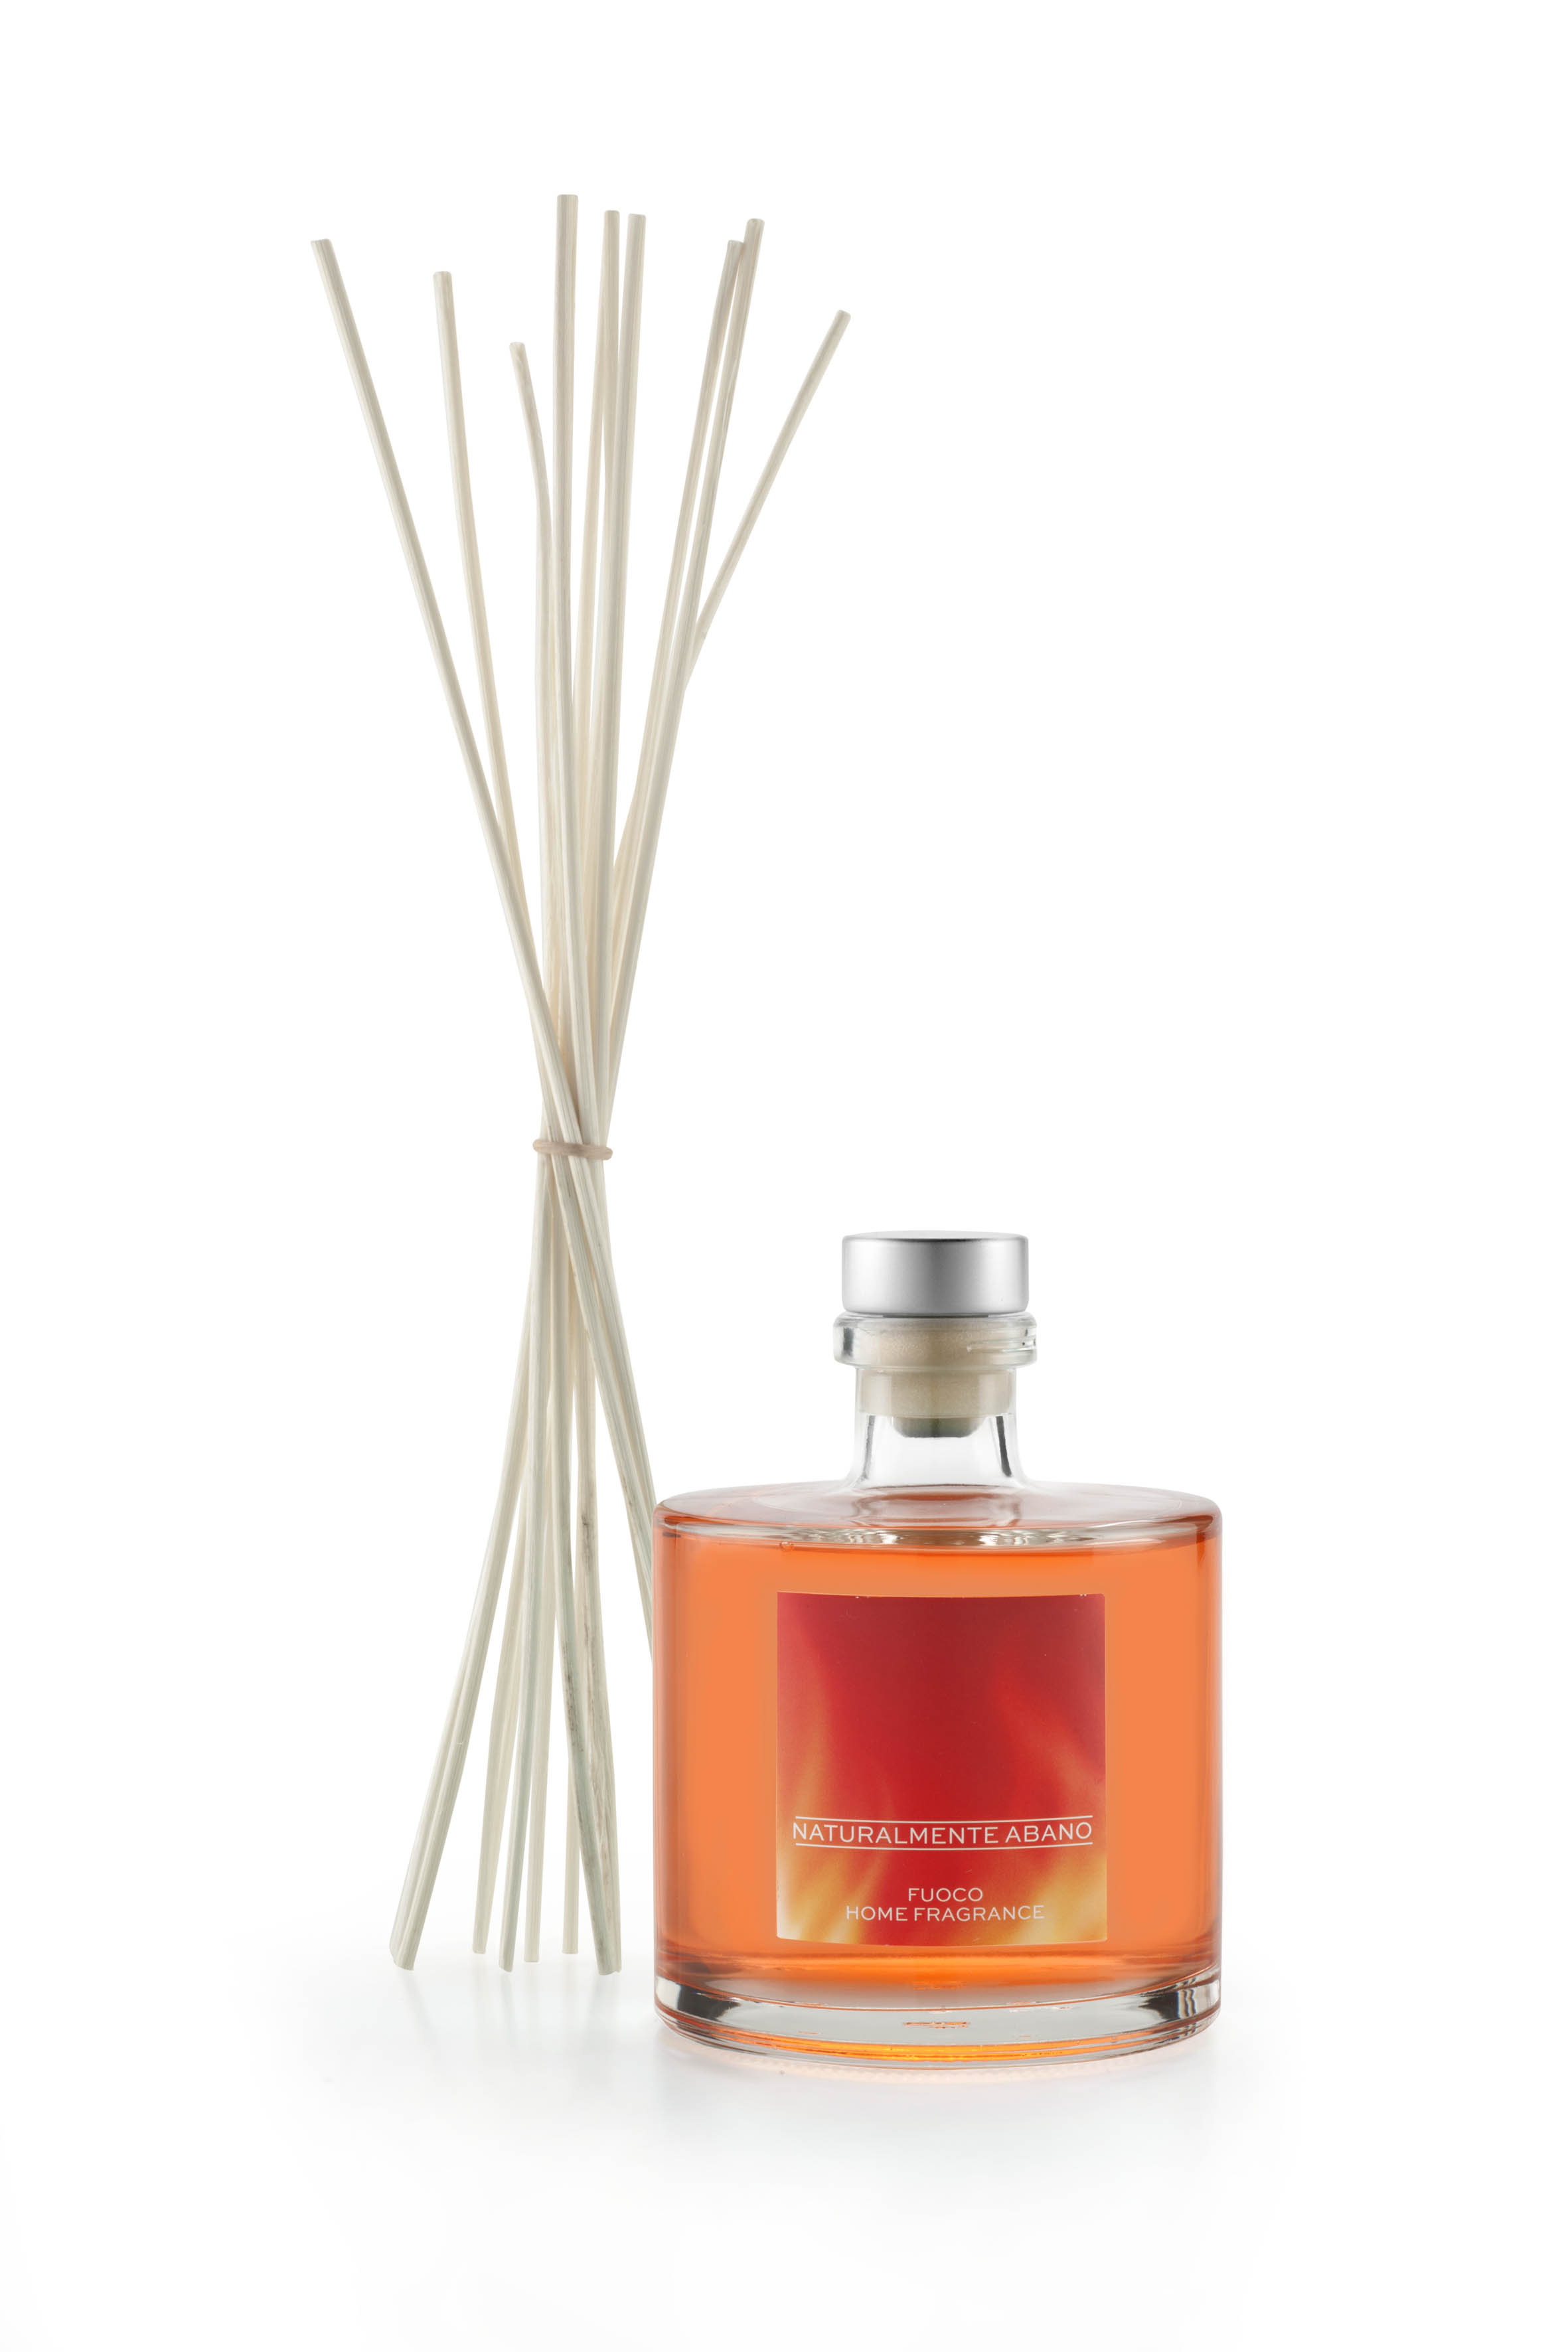 FUOCO HOME FRAGRANCE